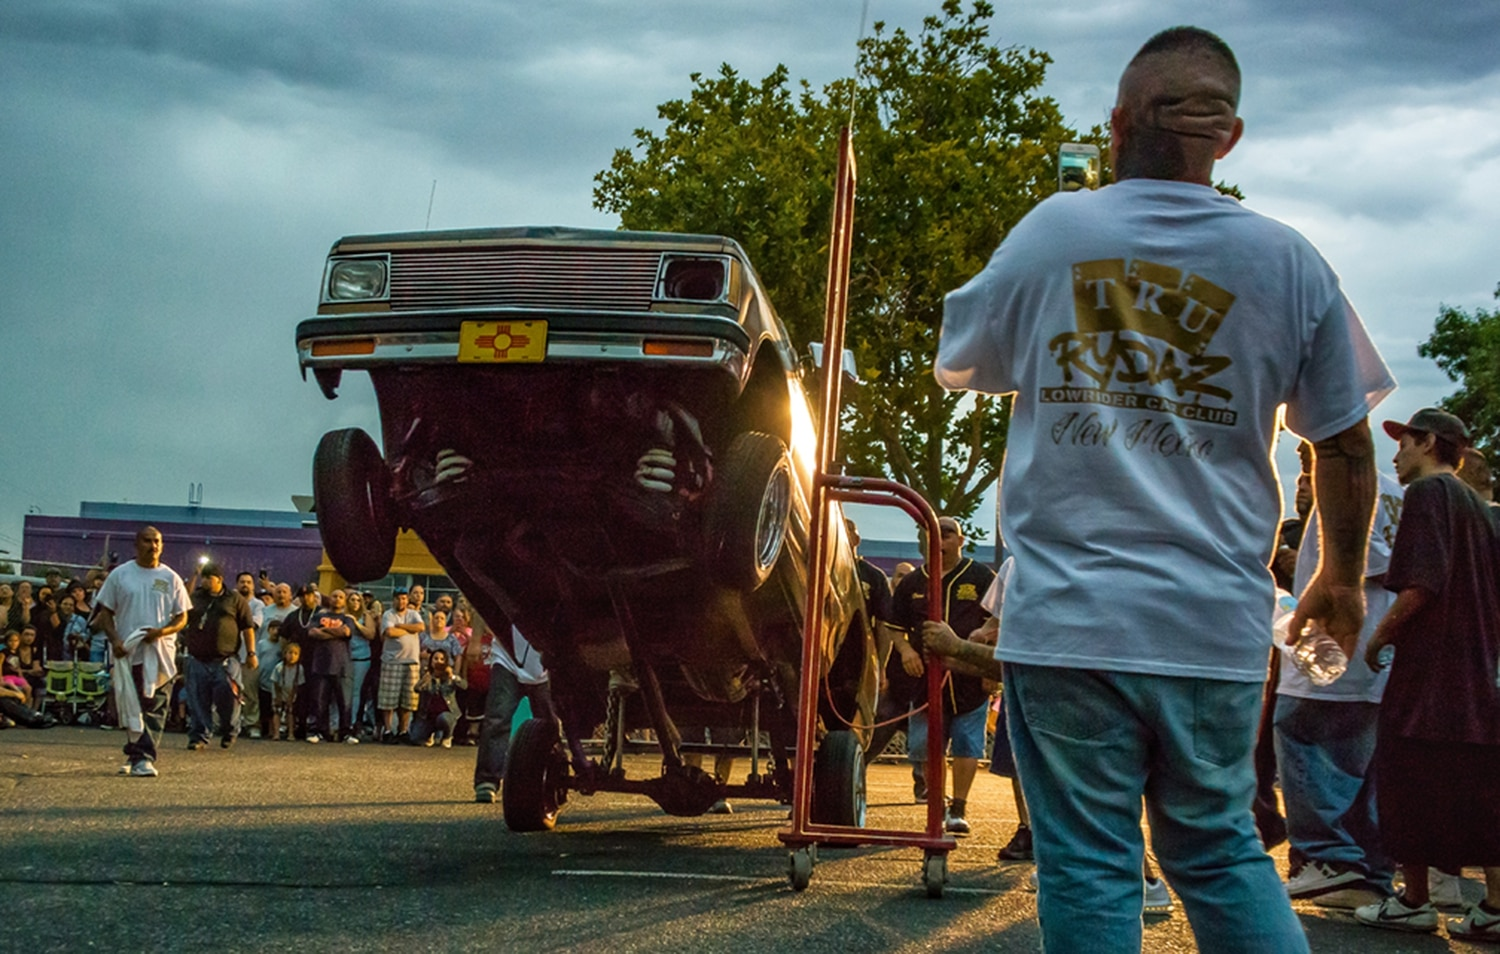 2nd Place: Lowrider Hop, competition in Albuquerque by Bobby Gutierrez